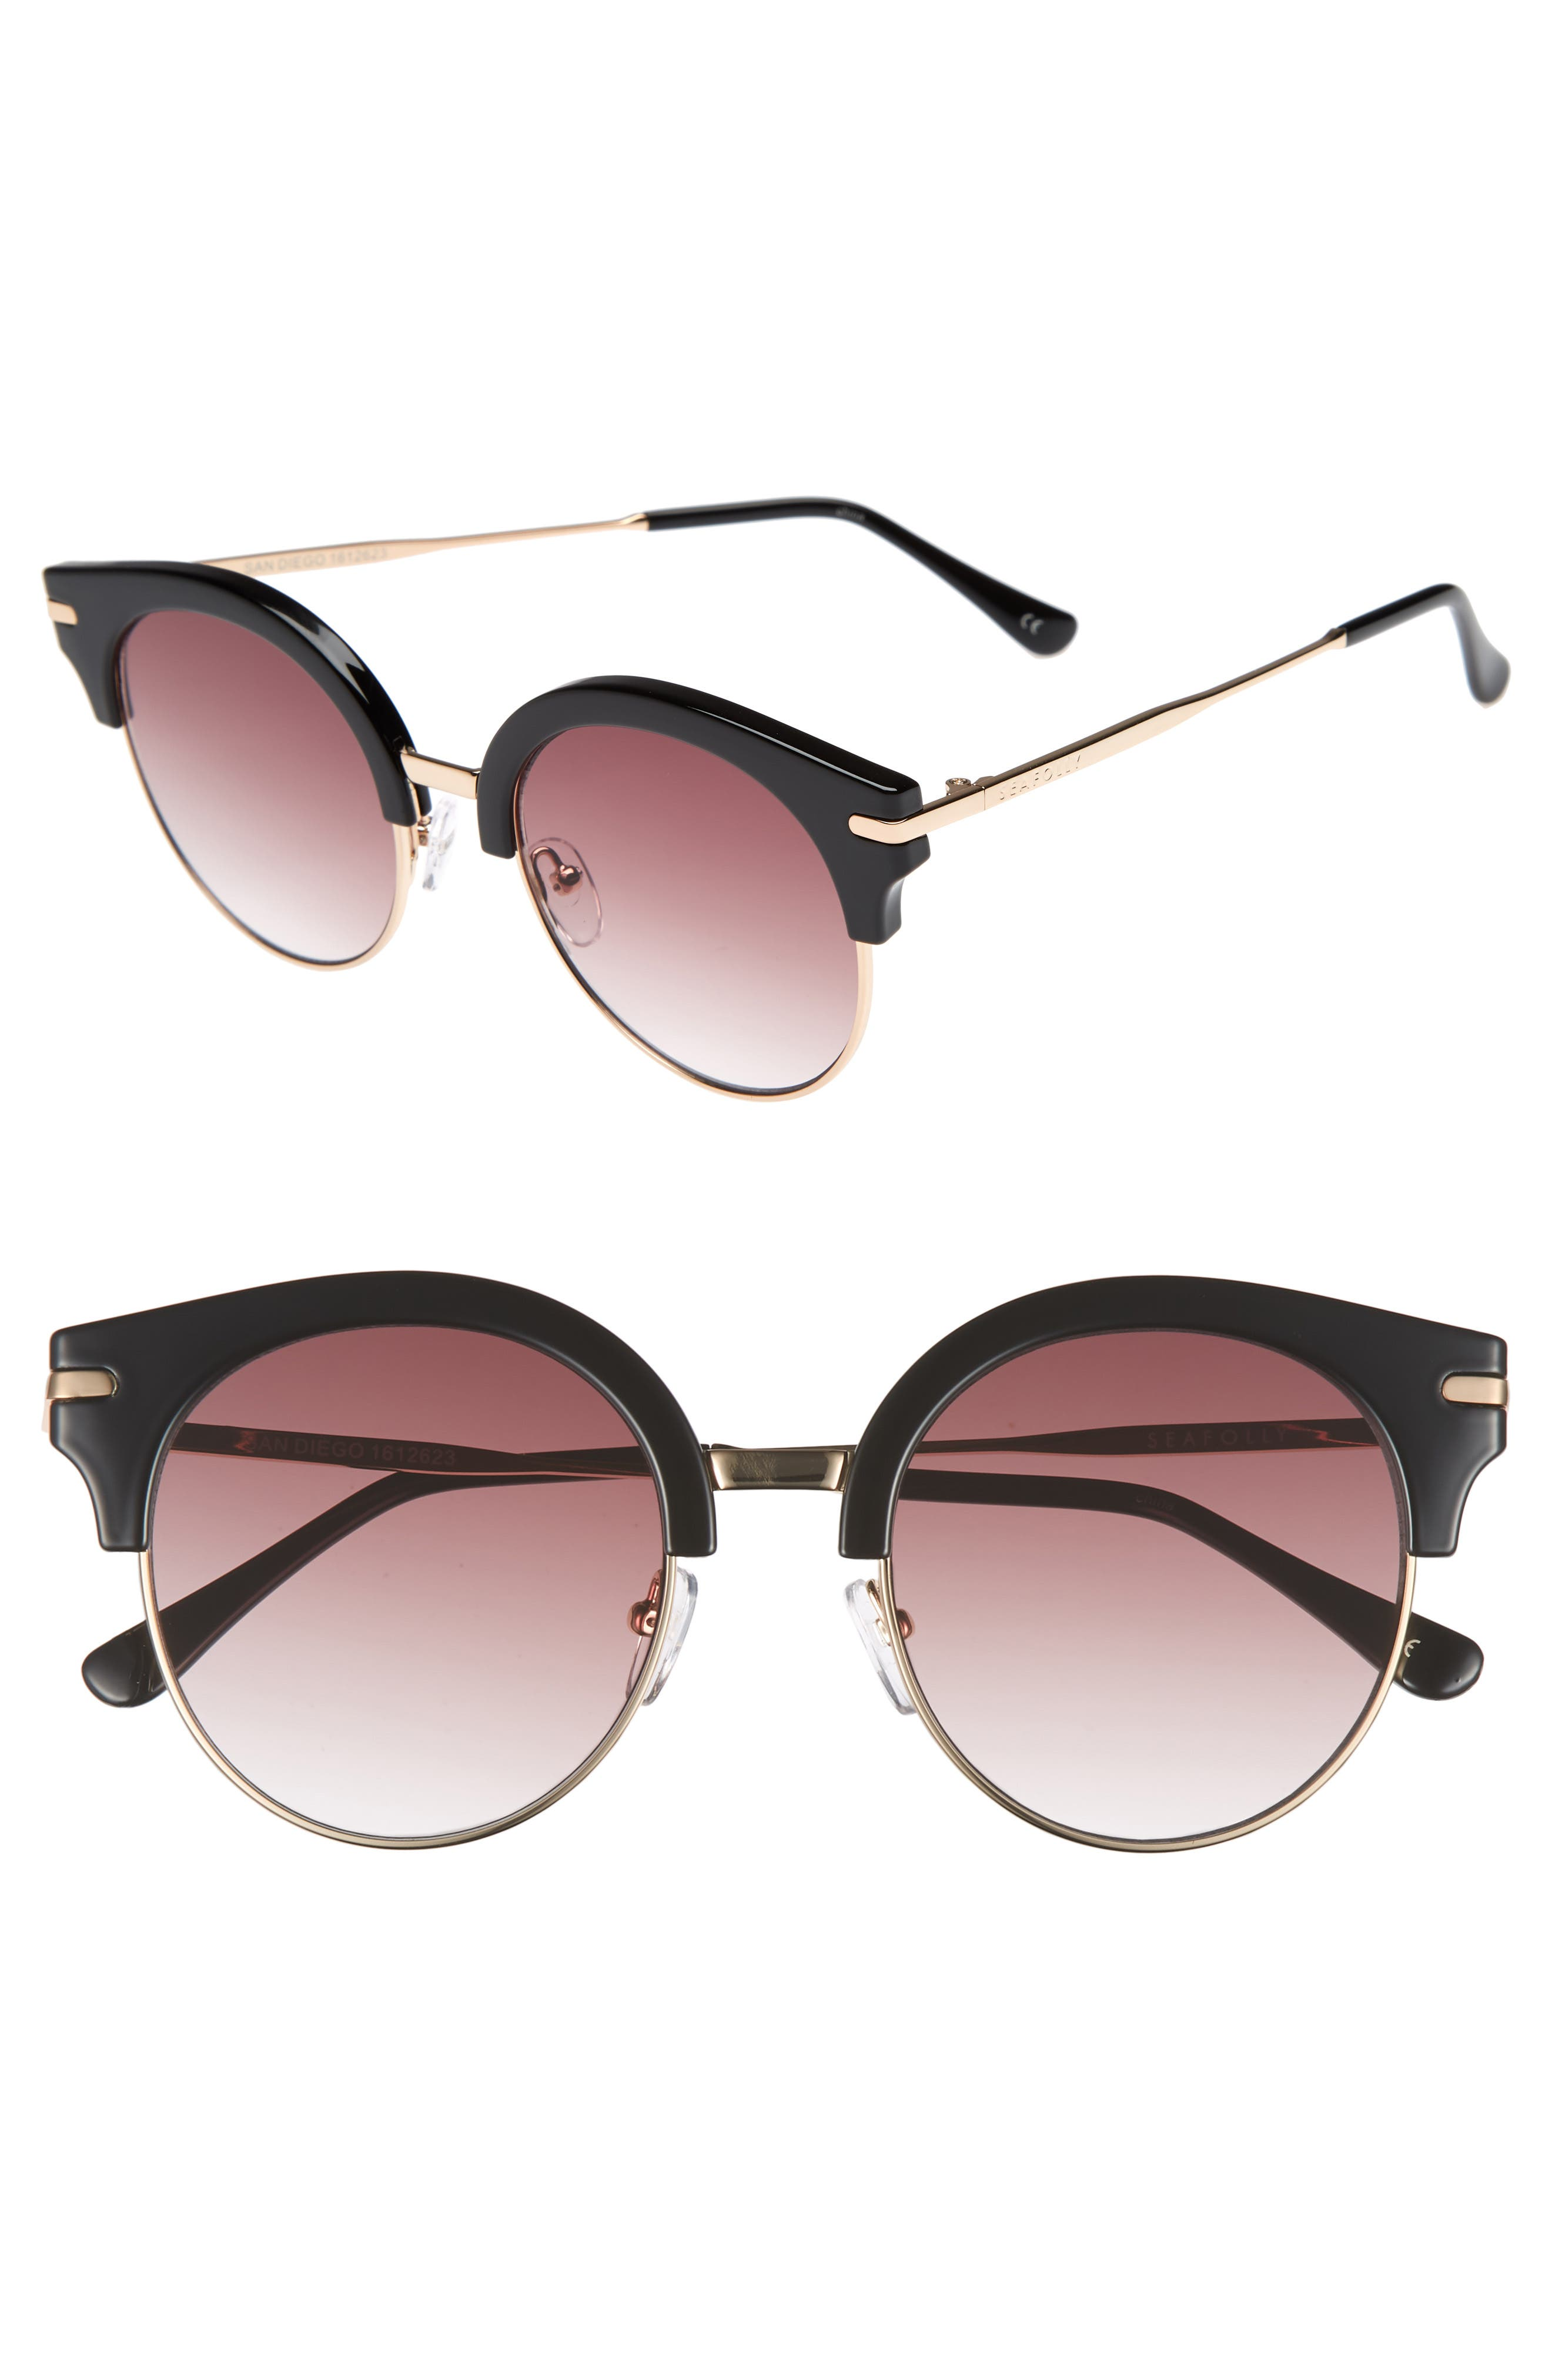 San Diego 52mm Cat Eye Sunglasses,                         Main,                         color, Black